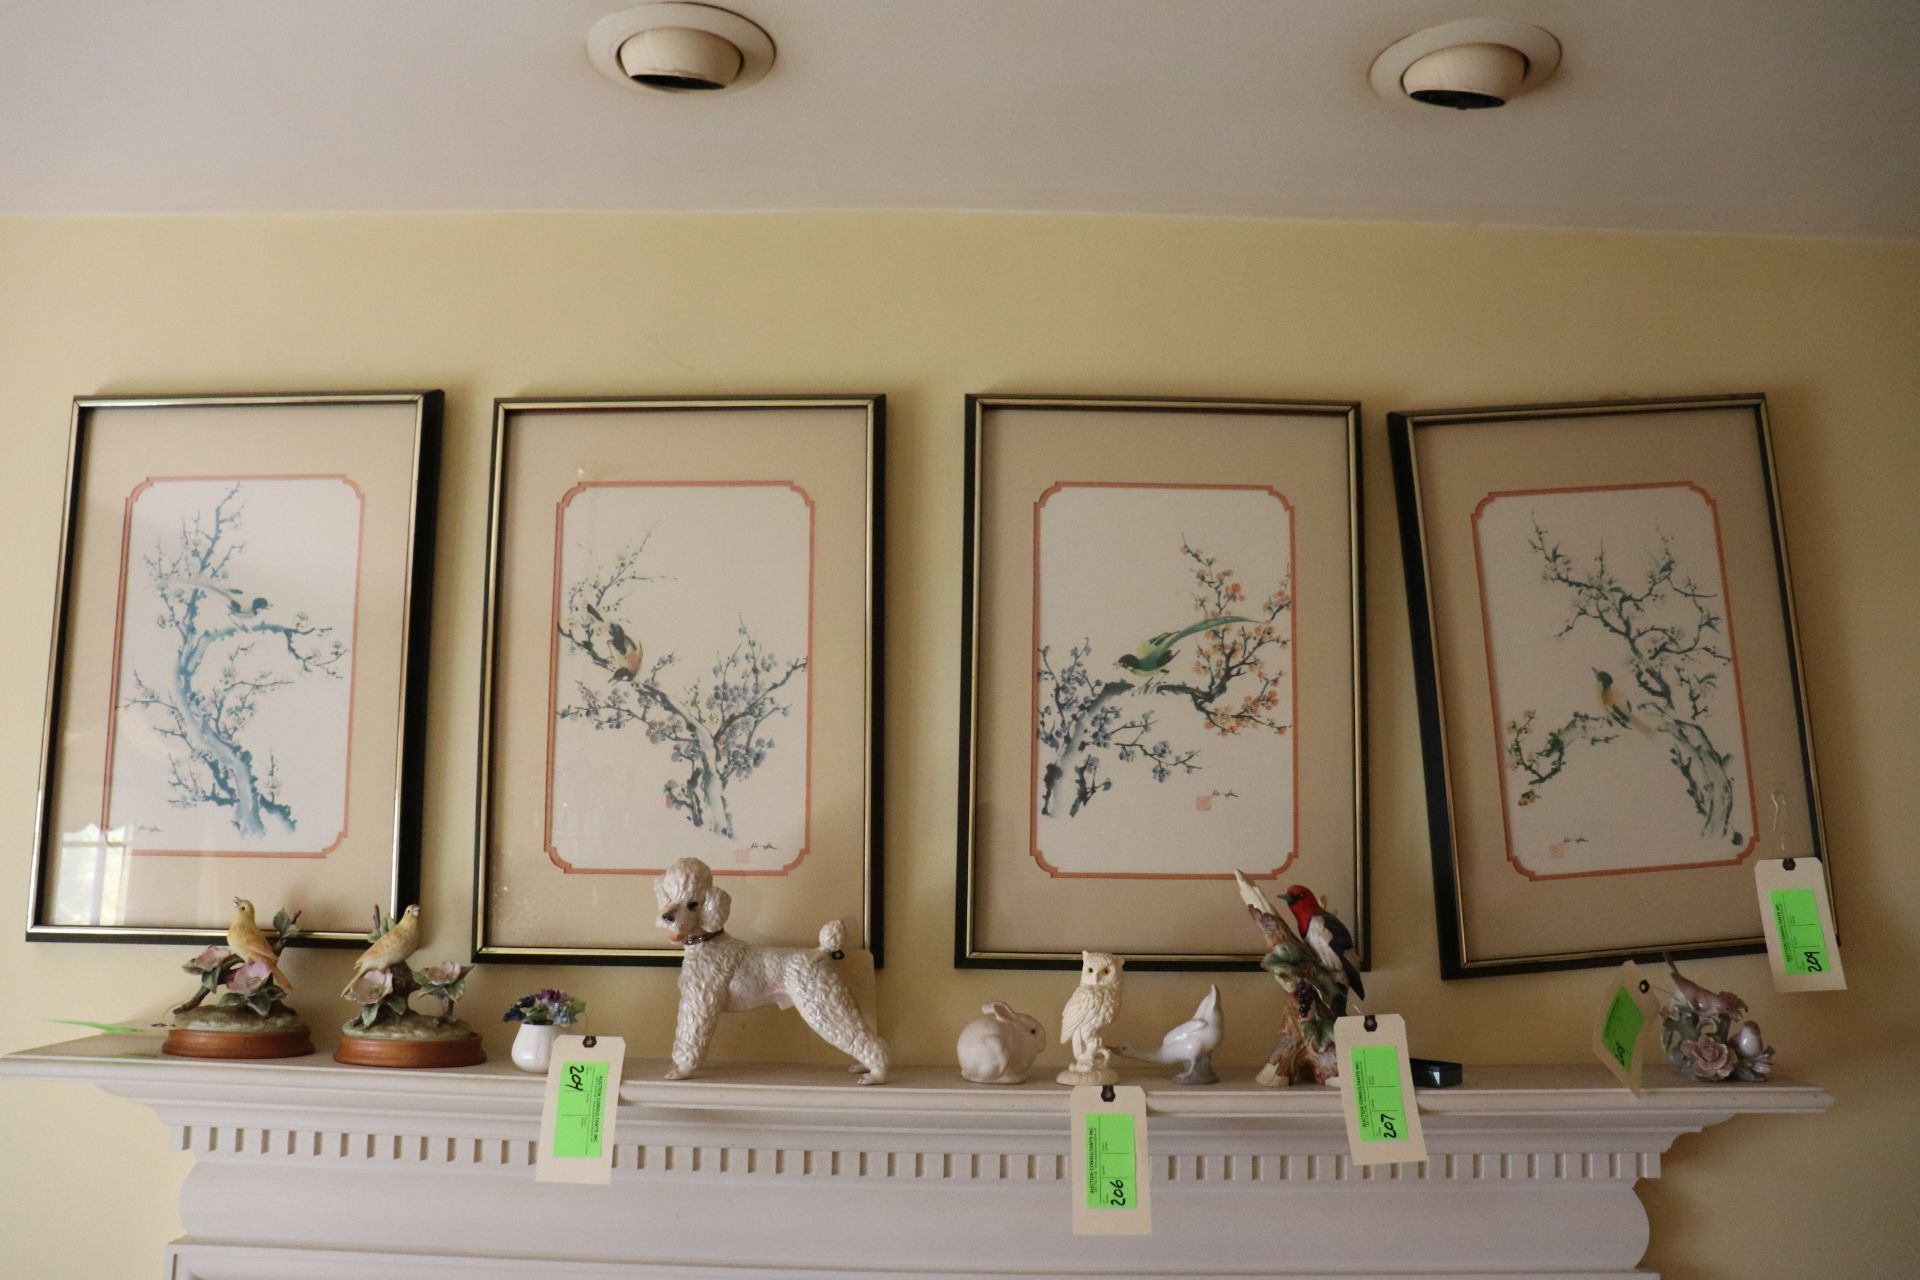 Set of four Asian color screenprints on paper depicting birds and foliage, all matted and framed, ap